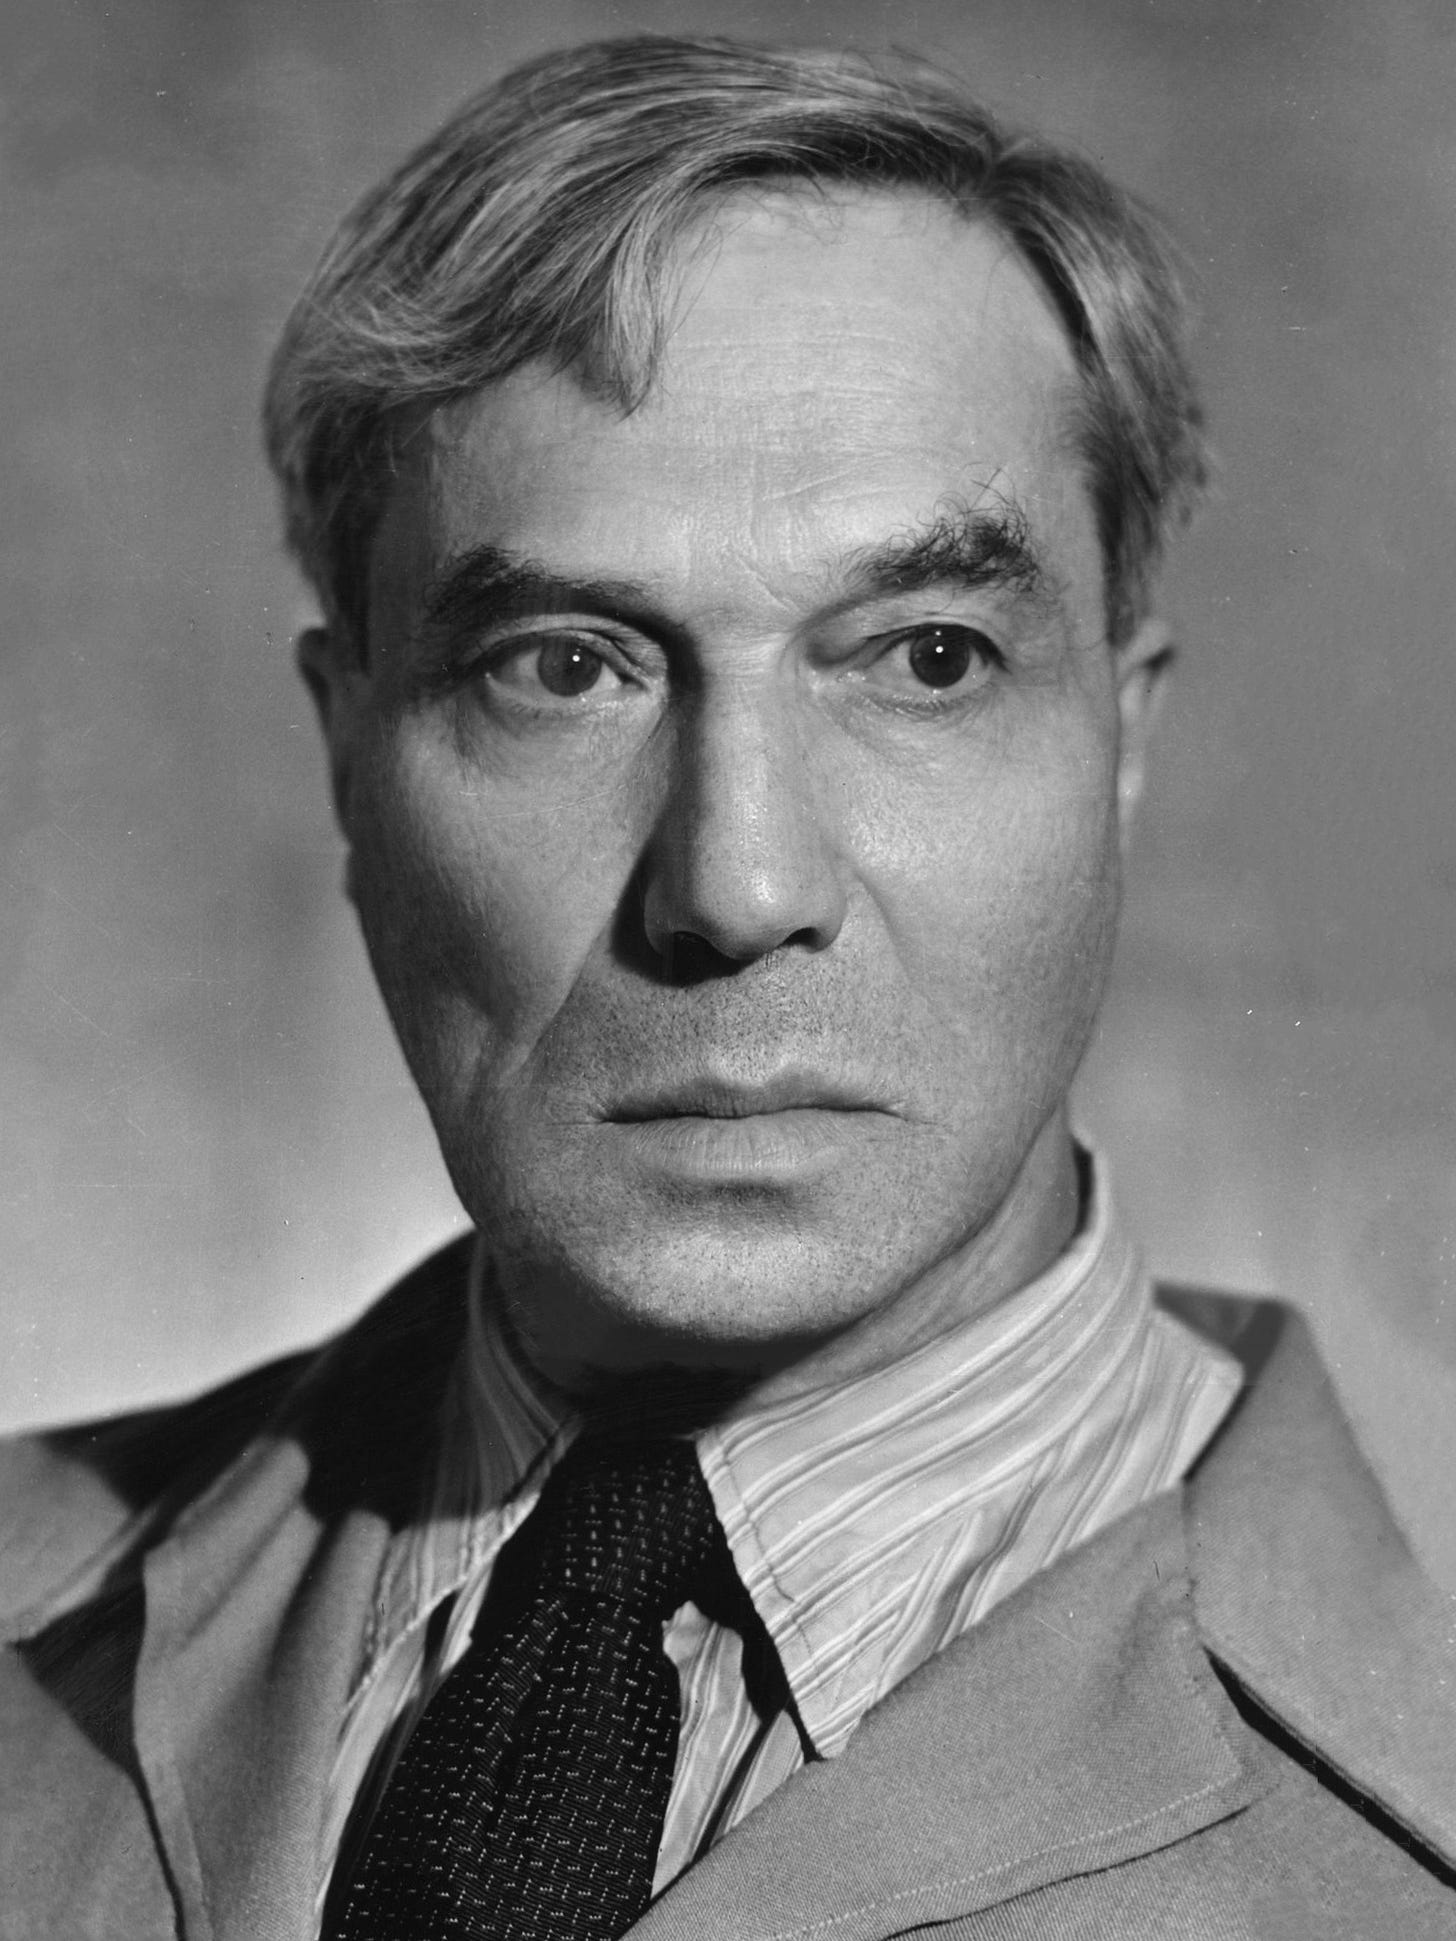 https://upload.wikimedia.org/wikipedia/commons/2/23/Boris_Pasternak_1969.jpg